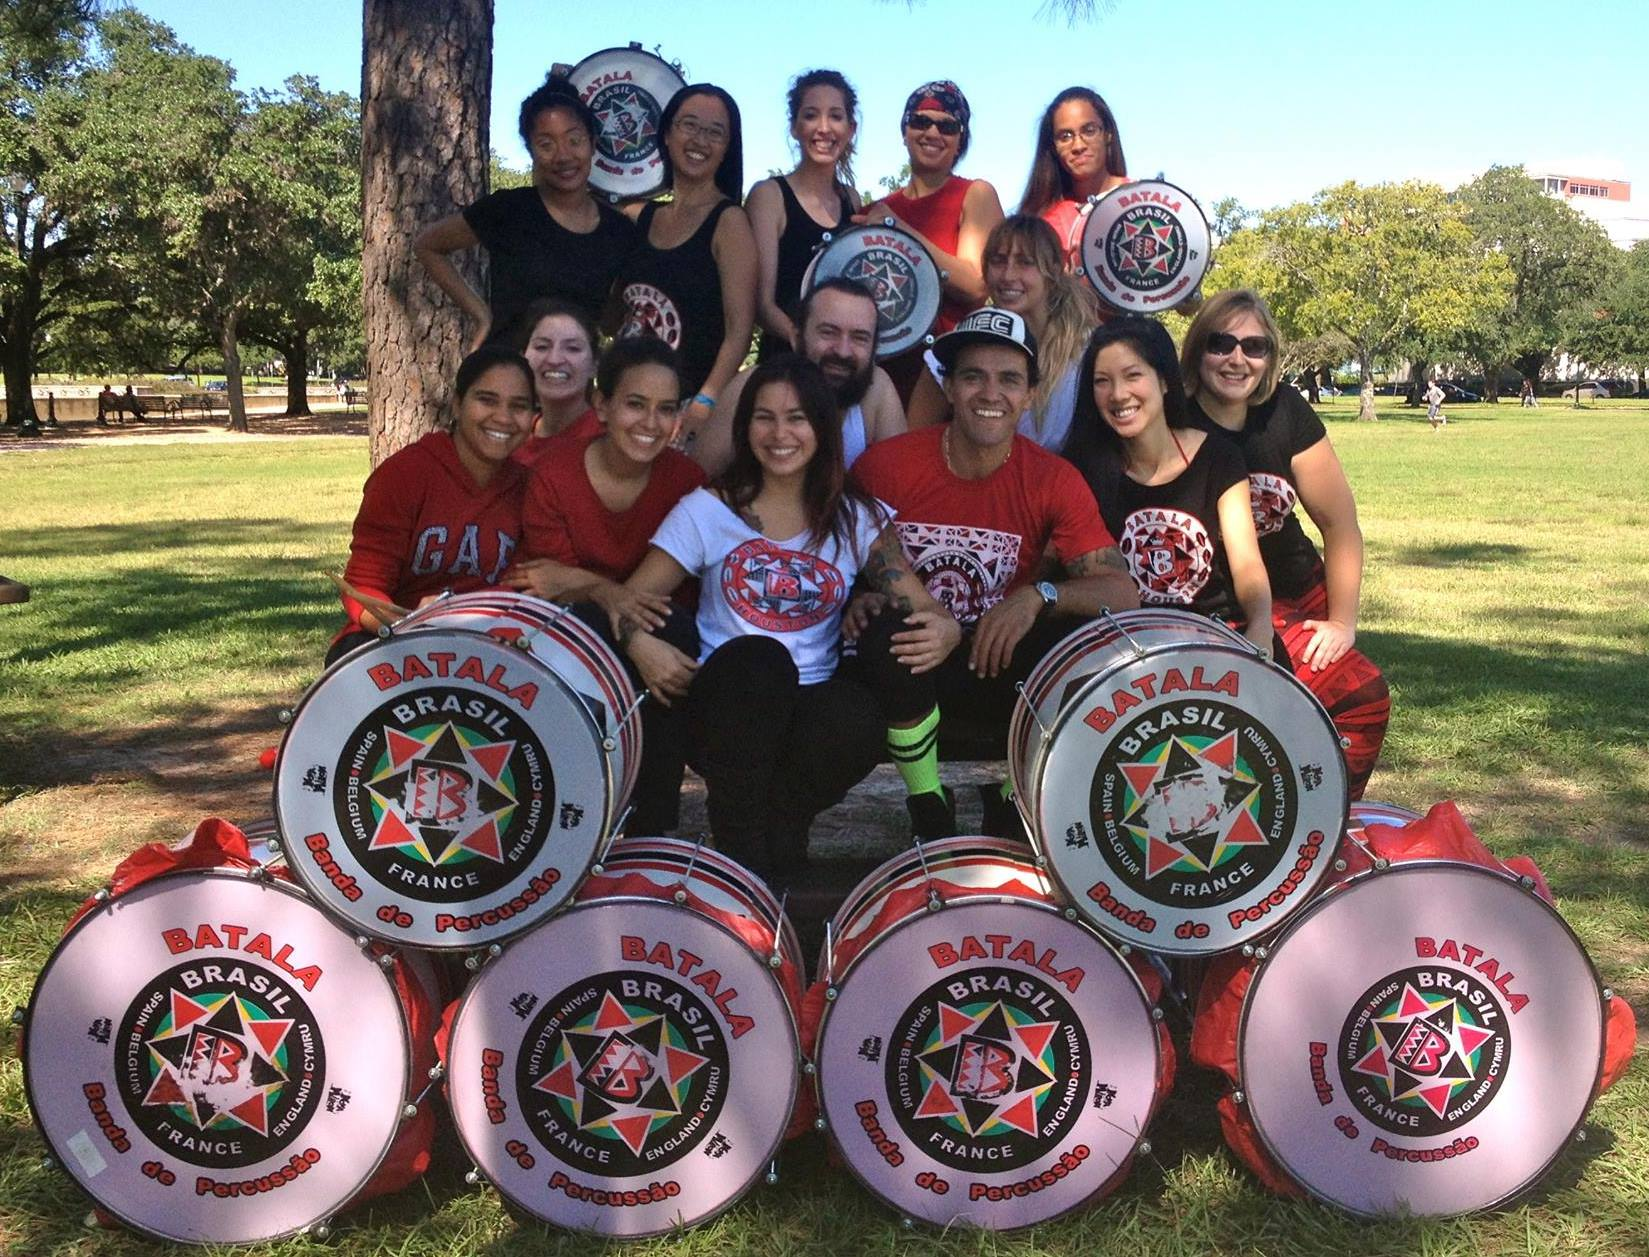 Batala Houston at rehearsal